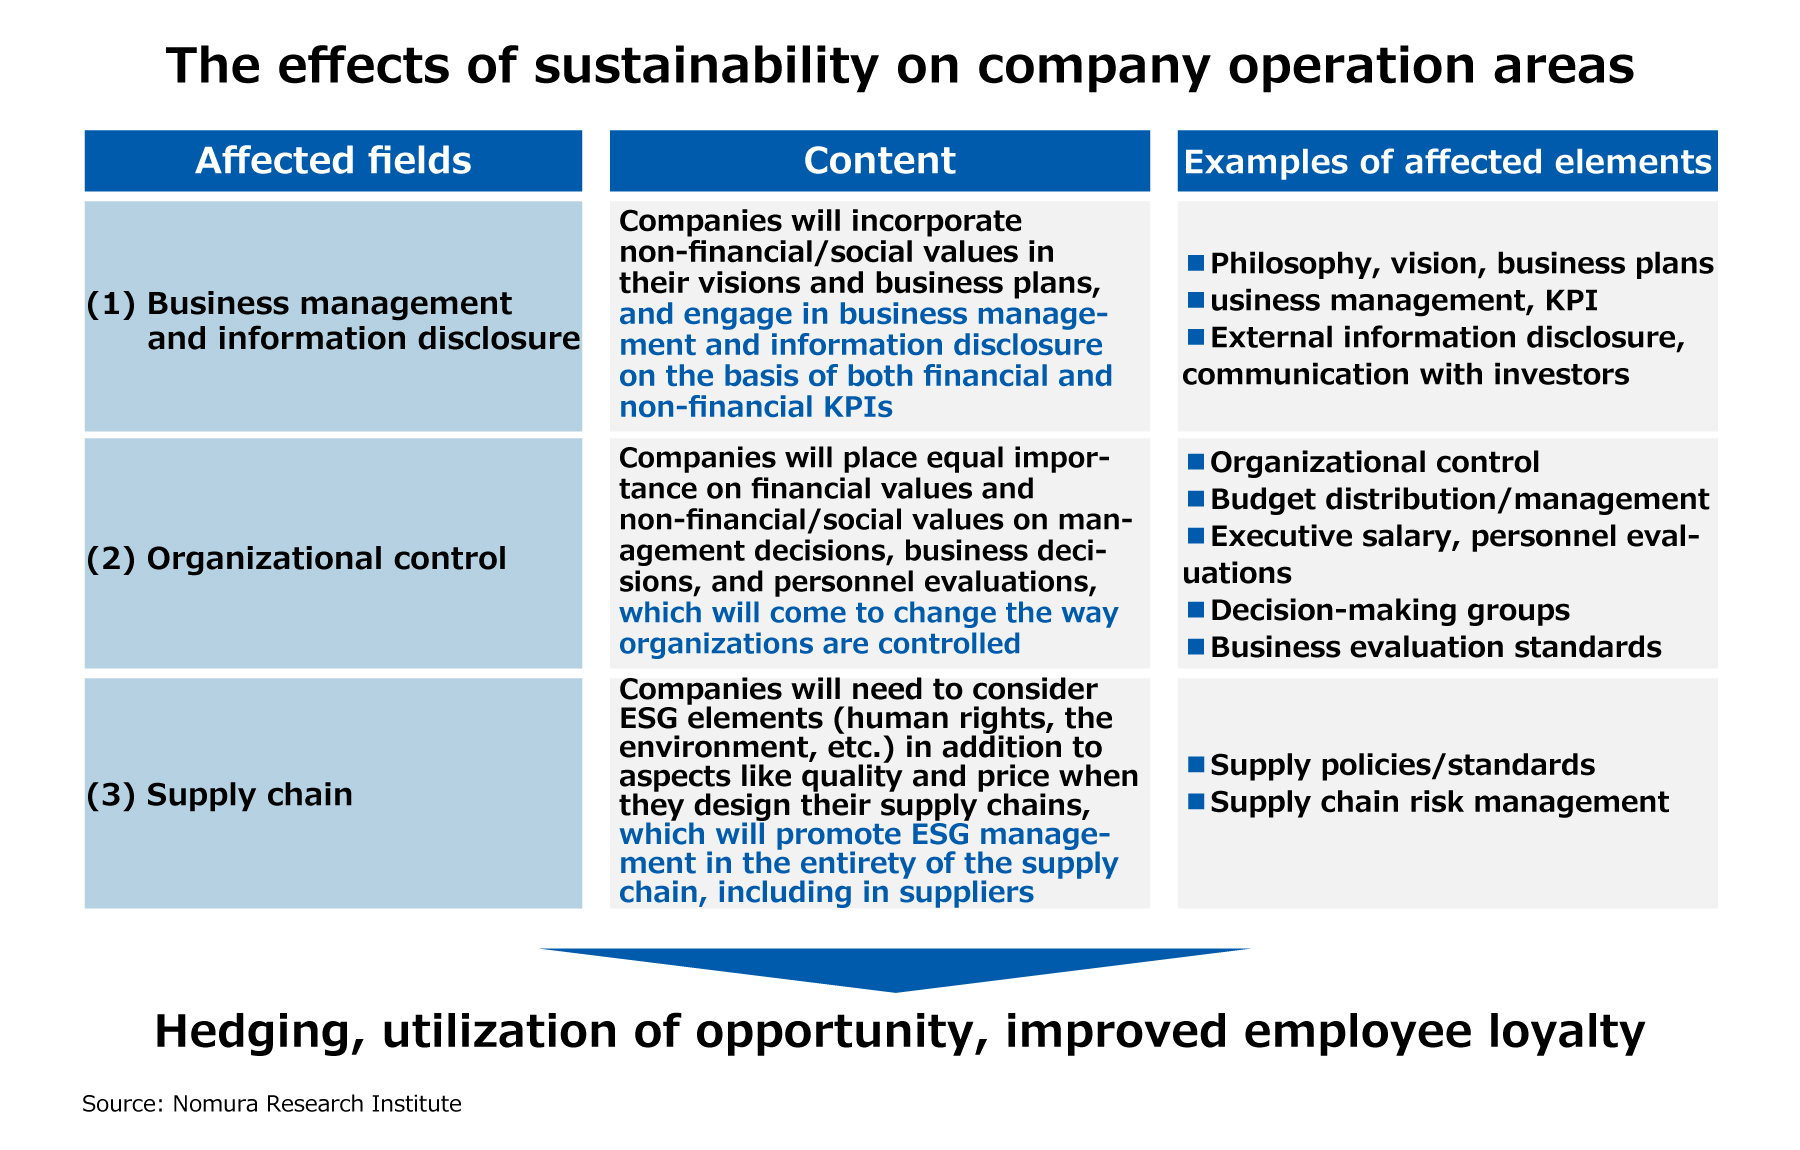 The effects of sustainability on company operation areas